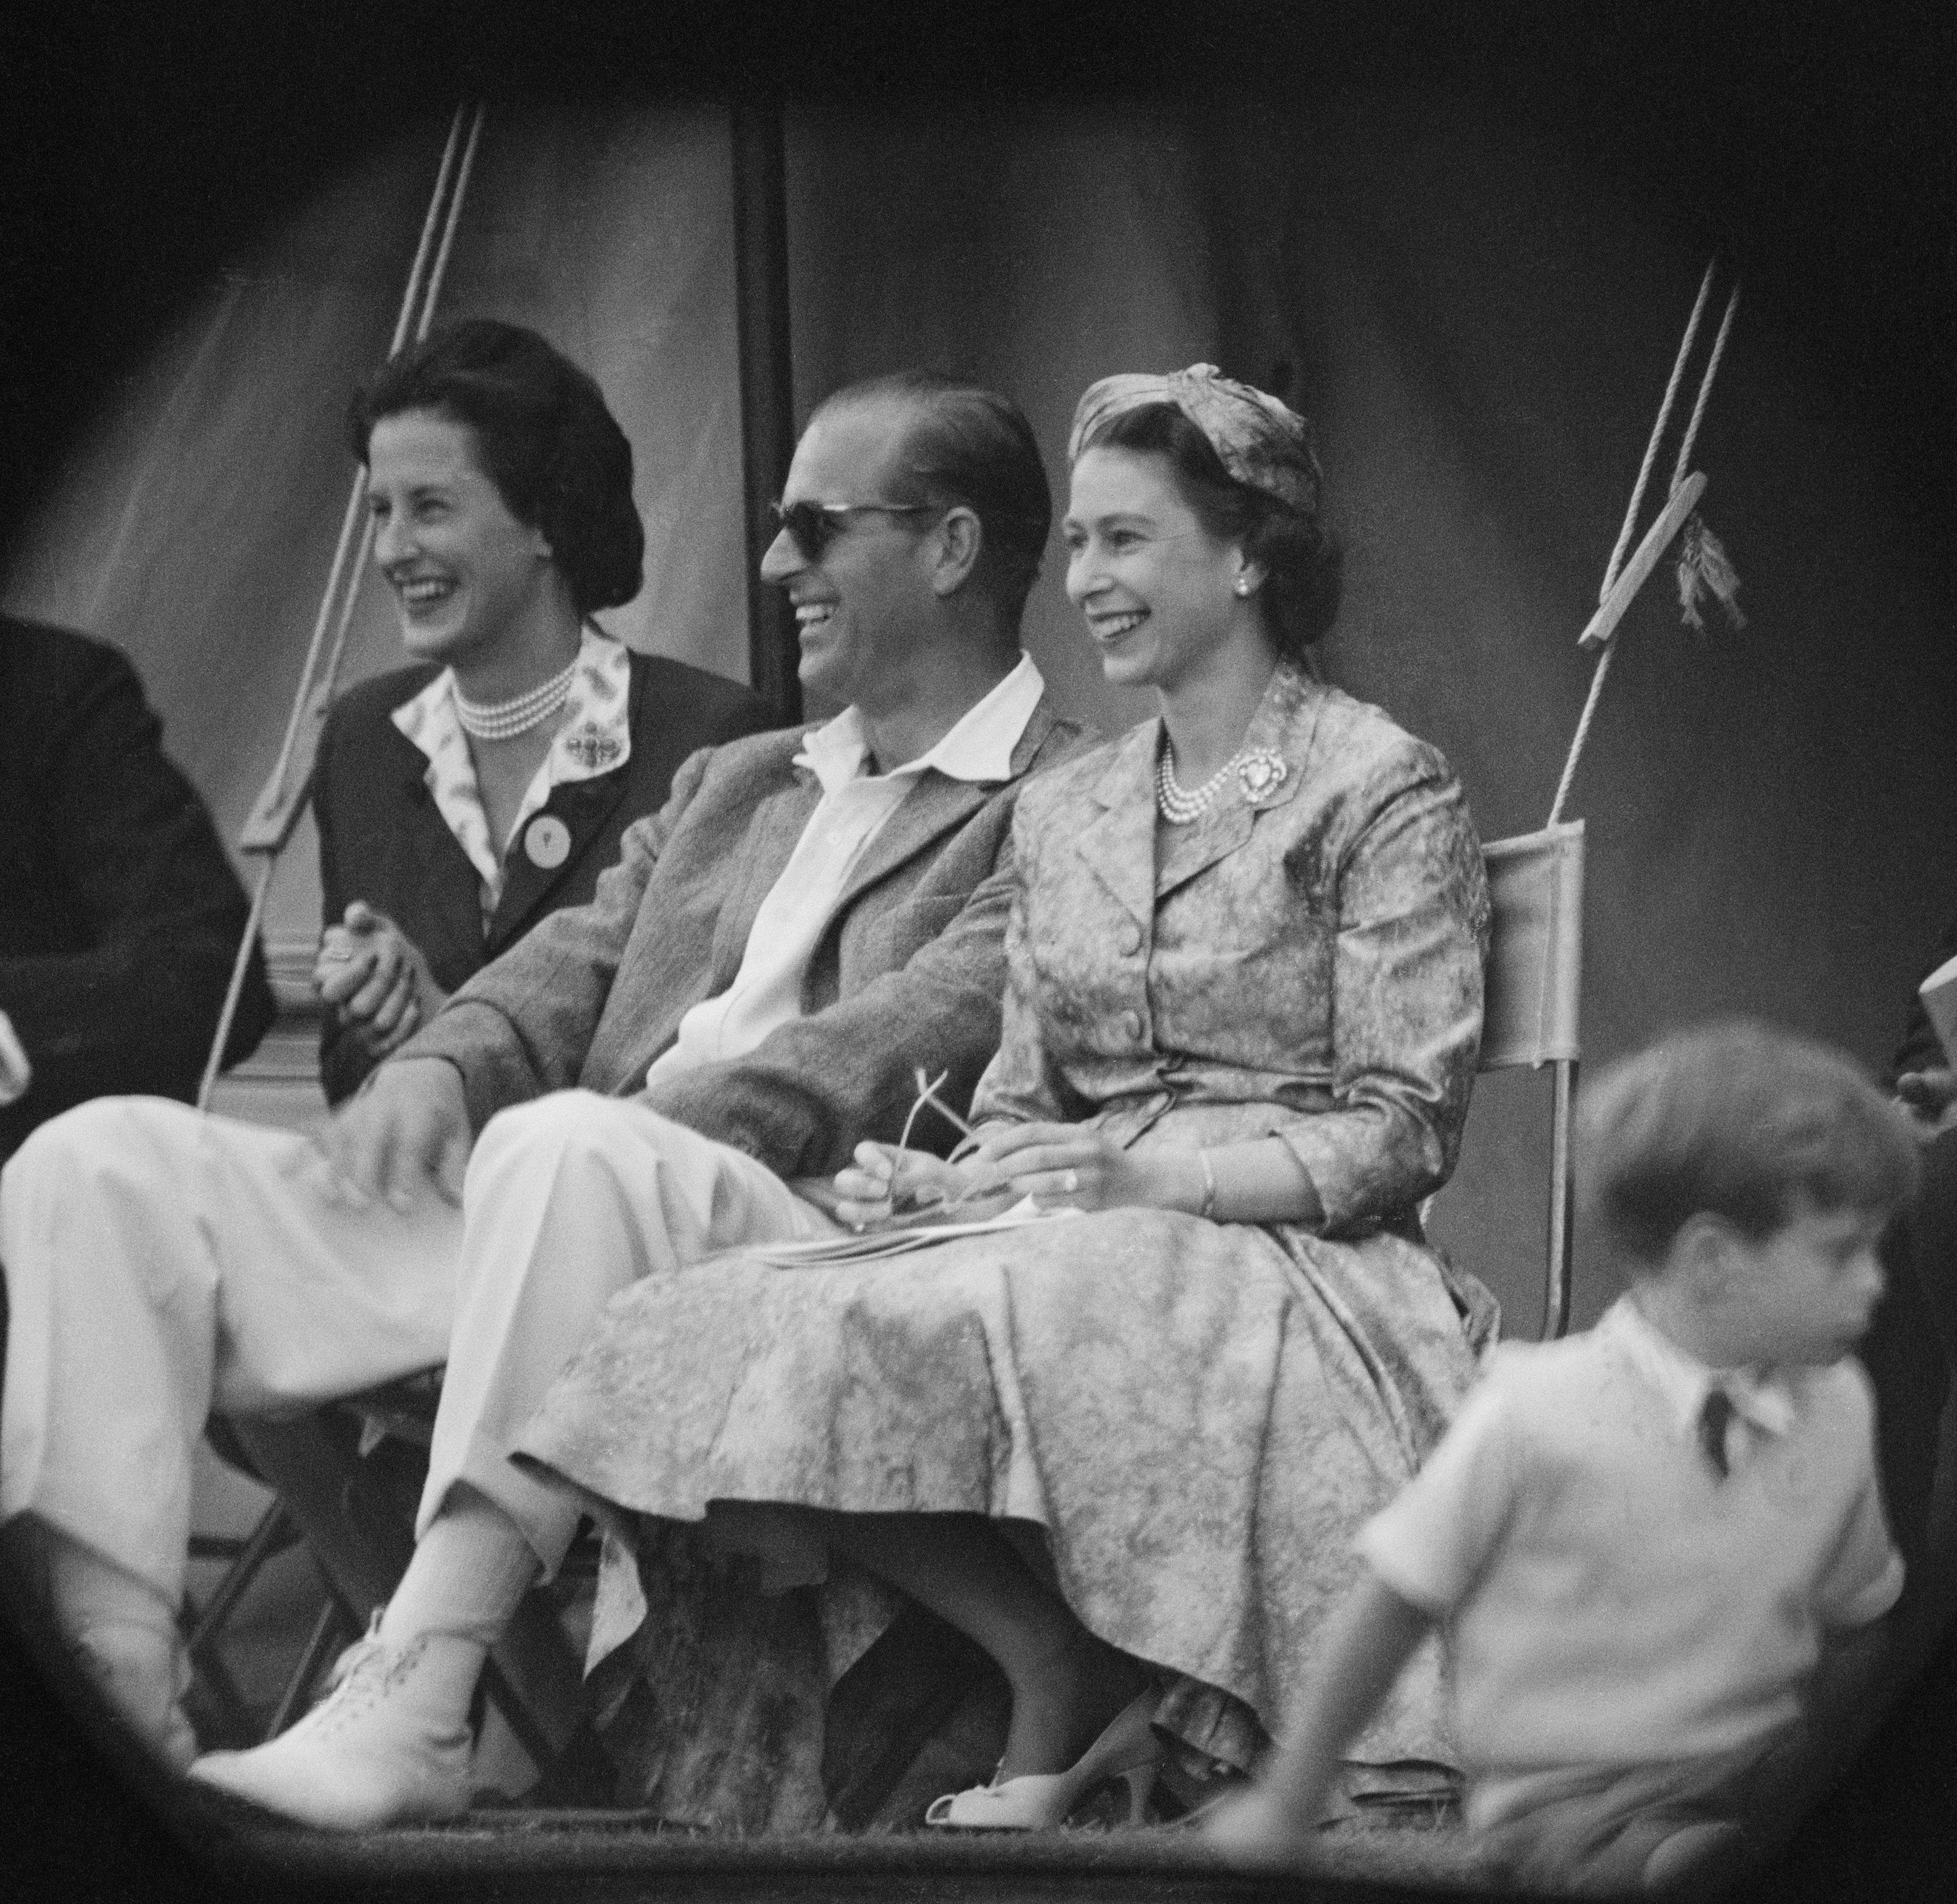 The Princess Elizabeth and the Duke of Edinburgh